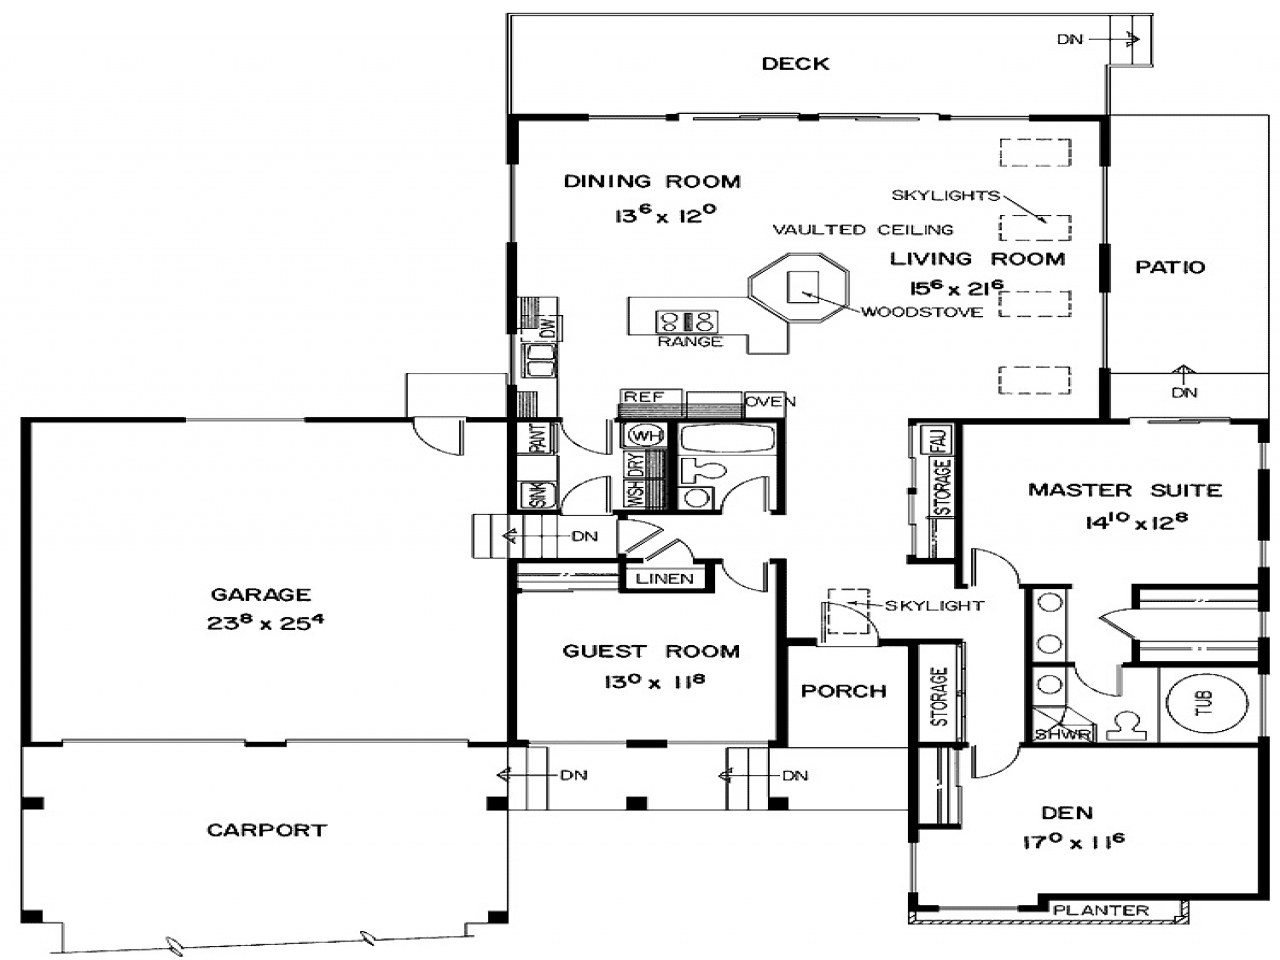 2 Bedroom House Simple Plan Two Bedroom House Plans with ...